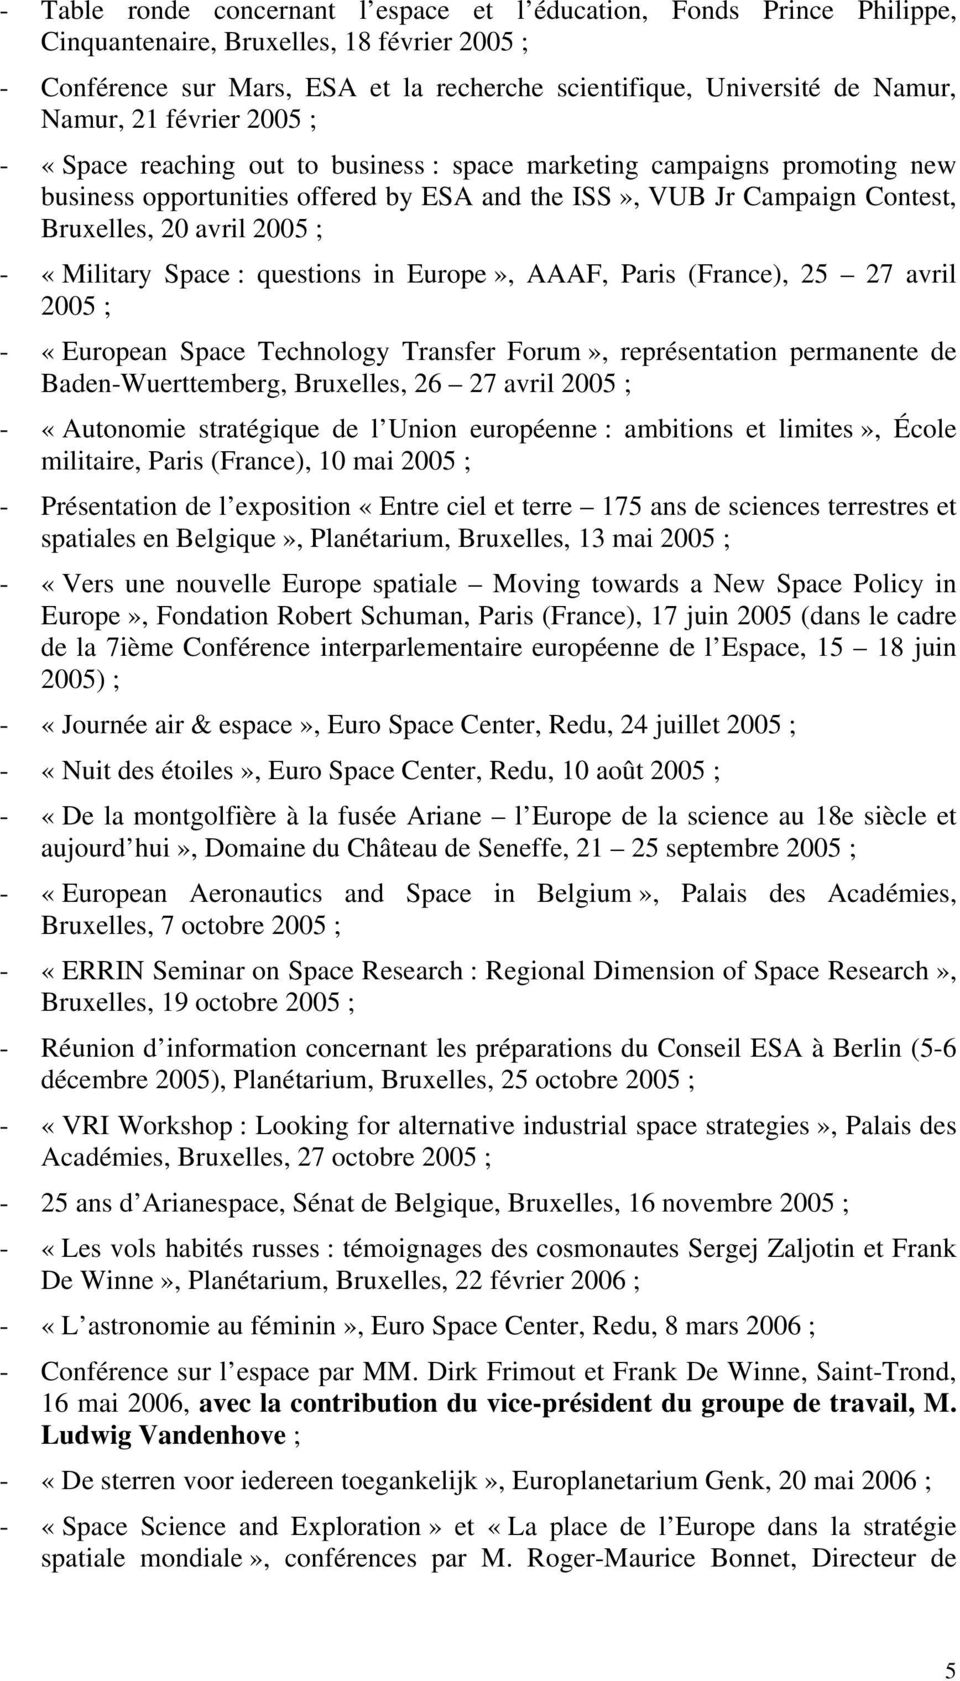 2005 ; - «Military Space : questions in Europe», AAAF, Paris (France), 25 27 avril 2005 ; - «European Space Technology Transfer Forum», représentation permanente de Baden-Wuerttemberg, Bruxelles, 26